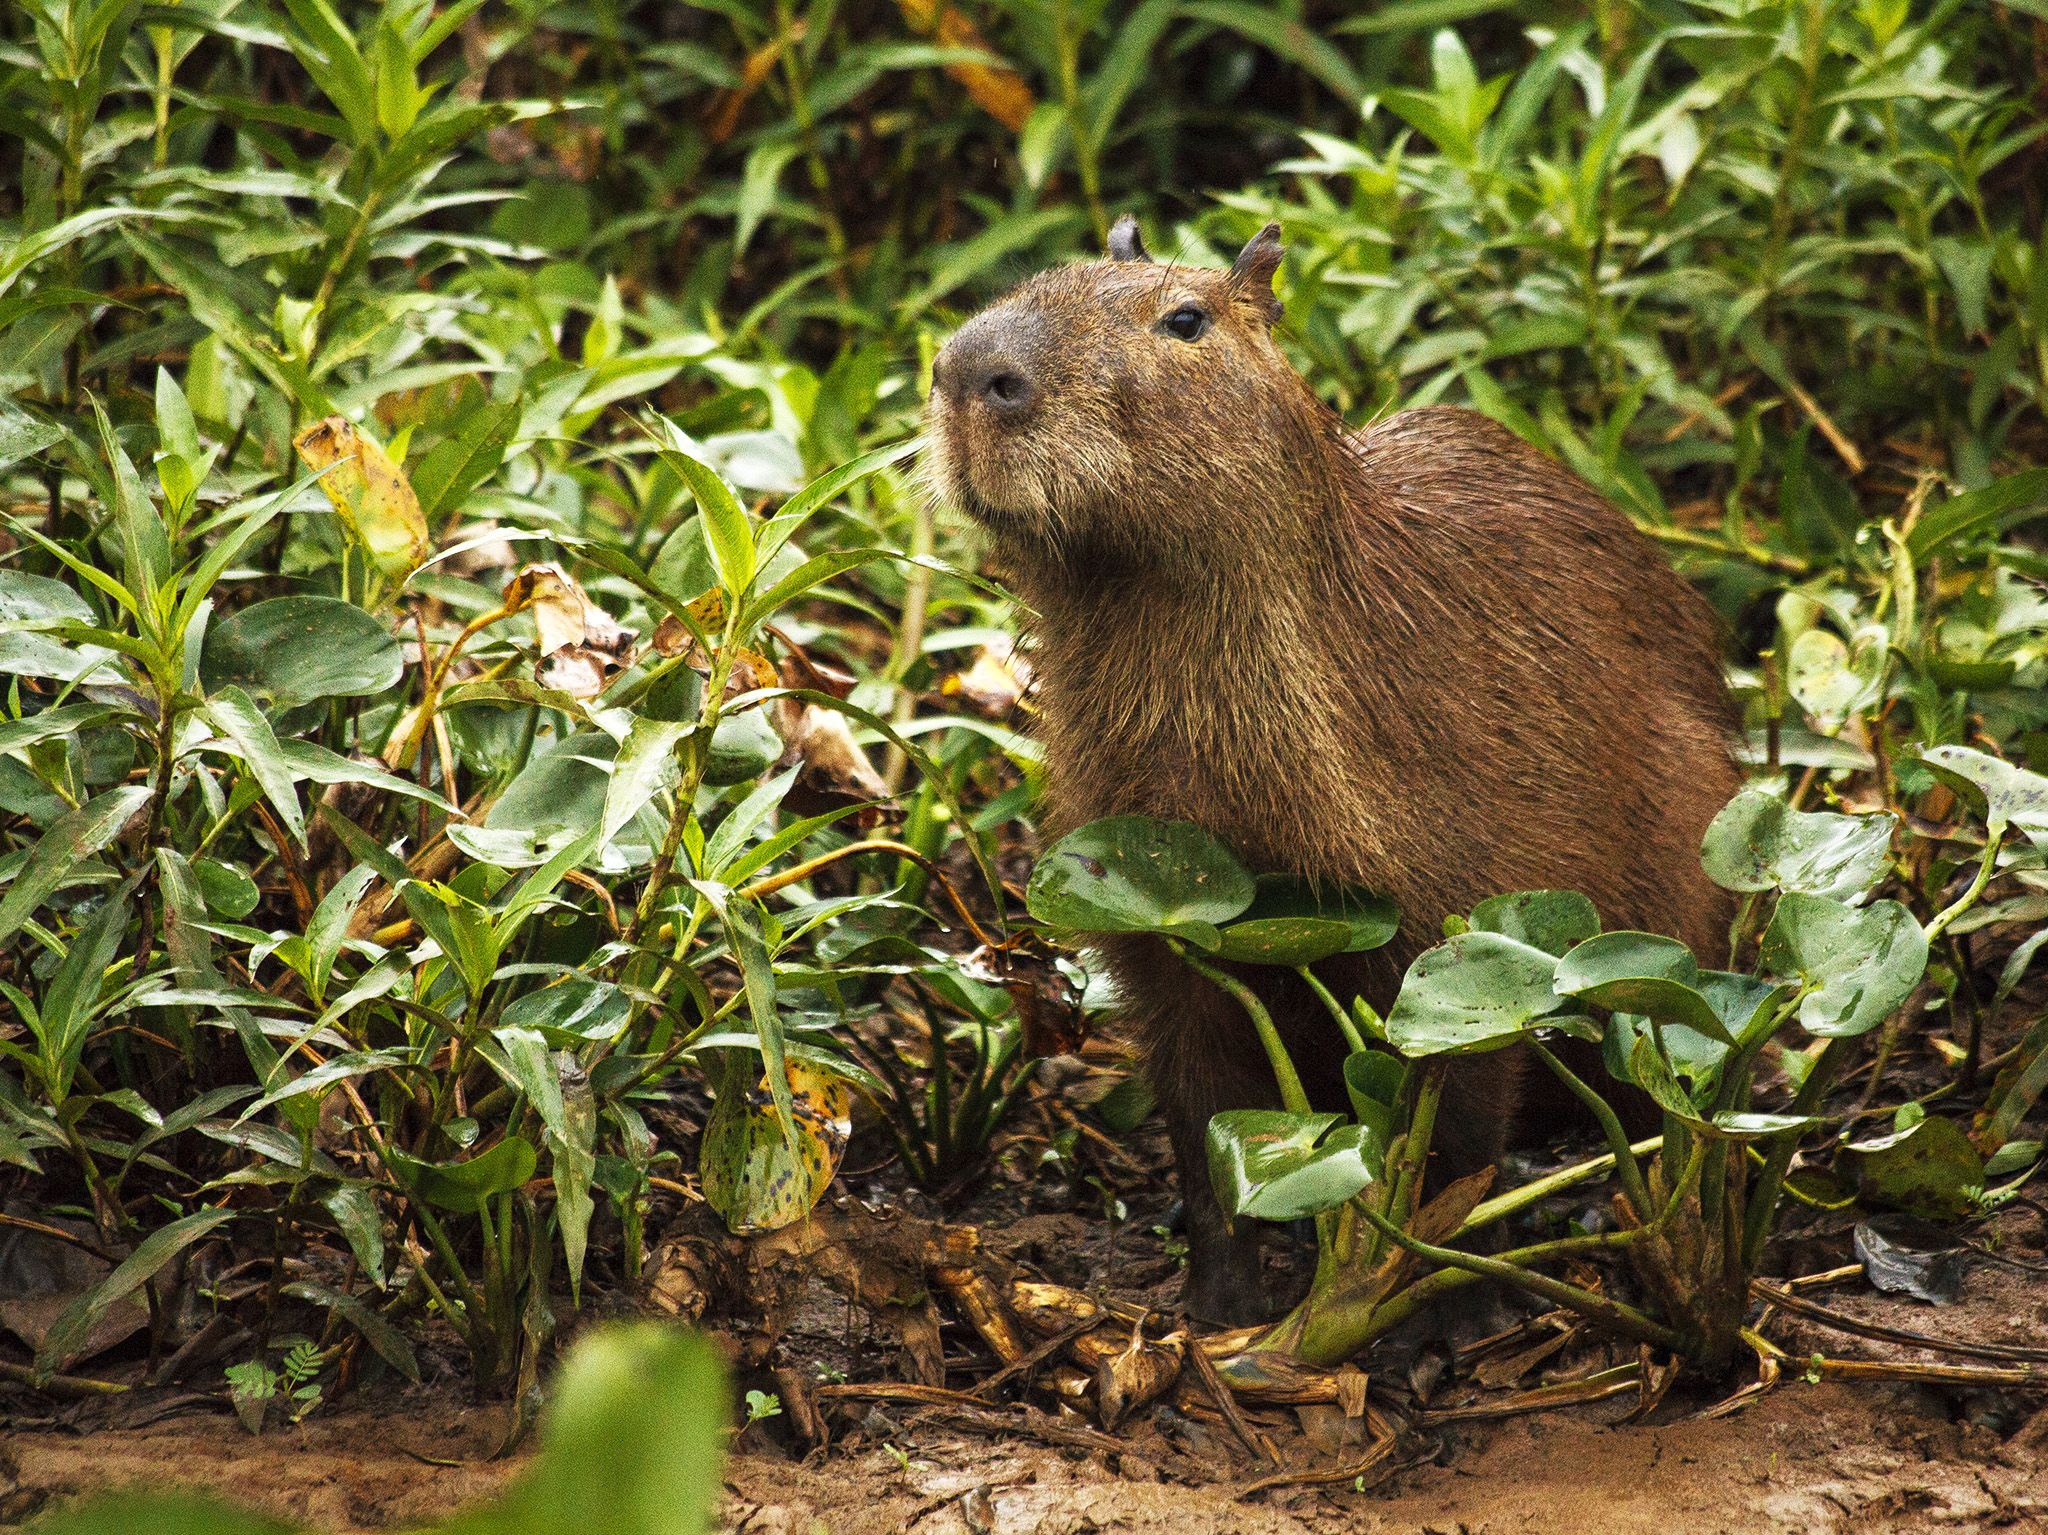 Capybaras, large rodents weighing up to 60 kilograms, are a perfect meal for jaguars. This image... [Photo of the day - February 2019]